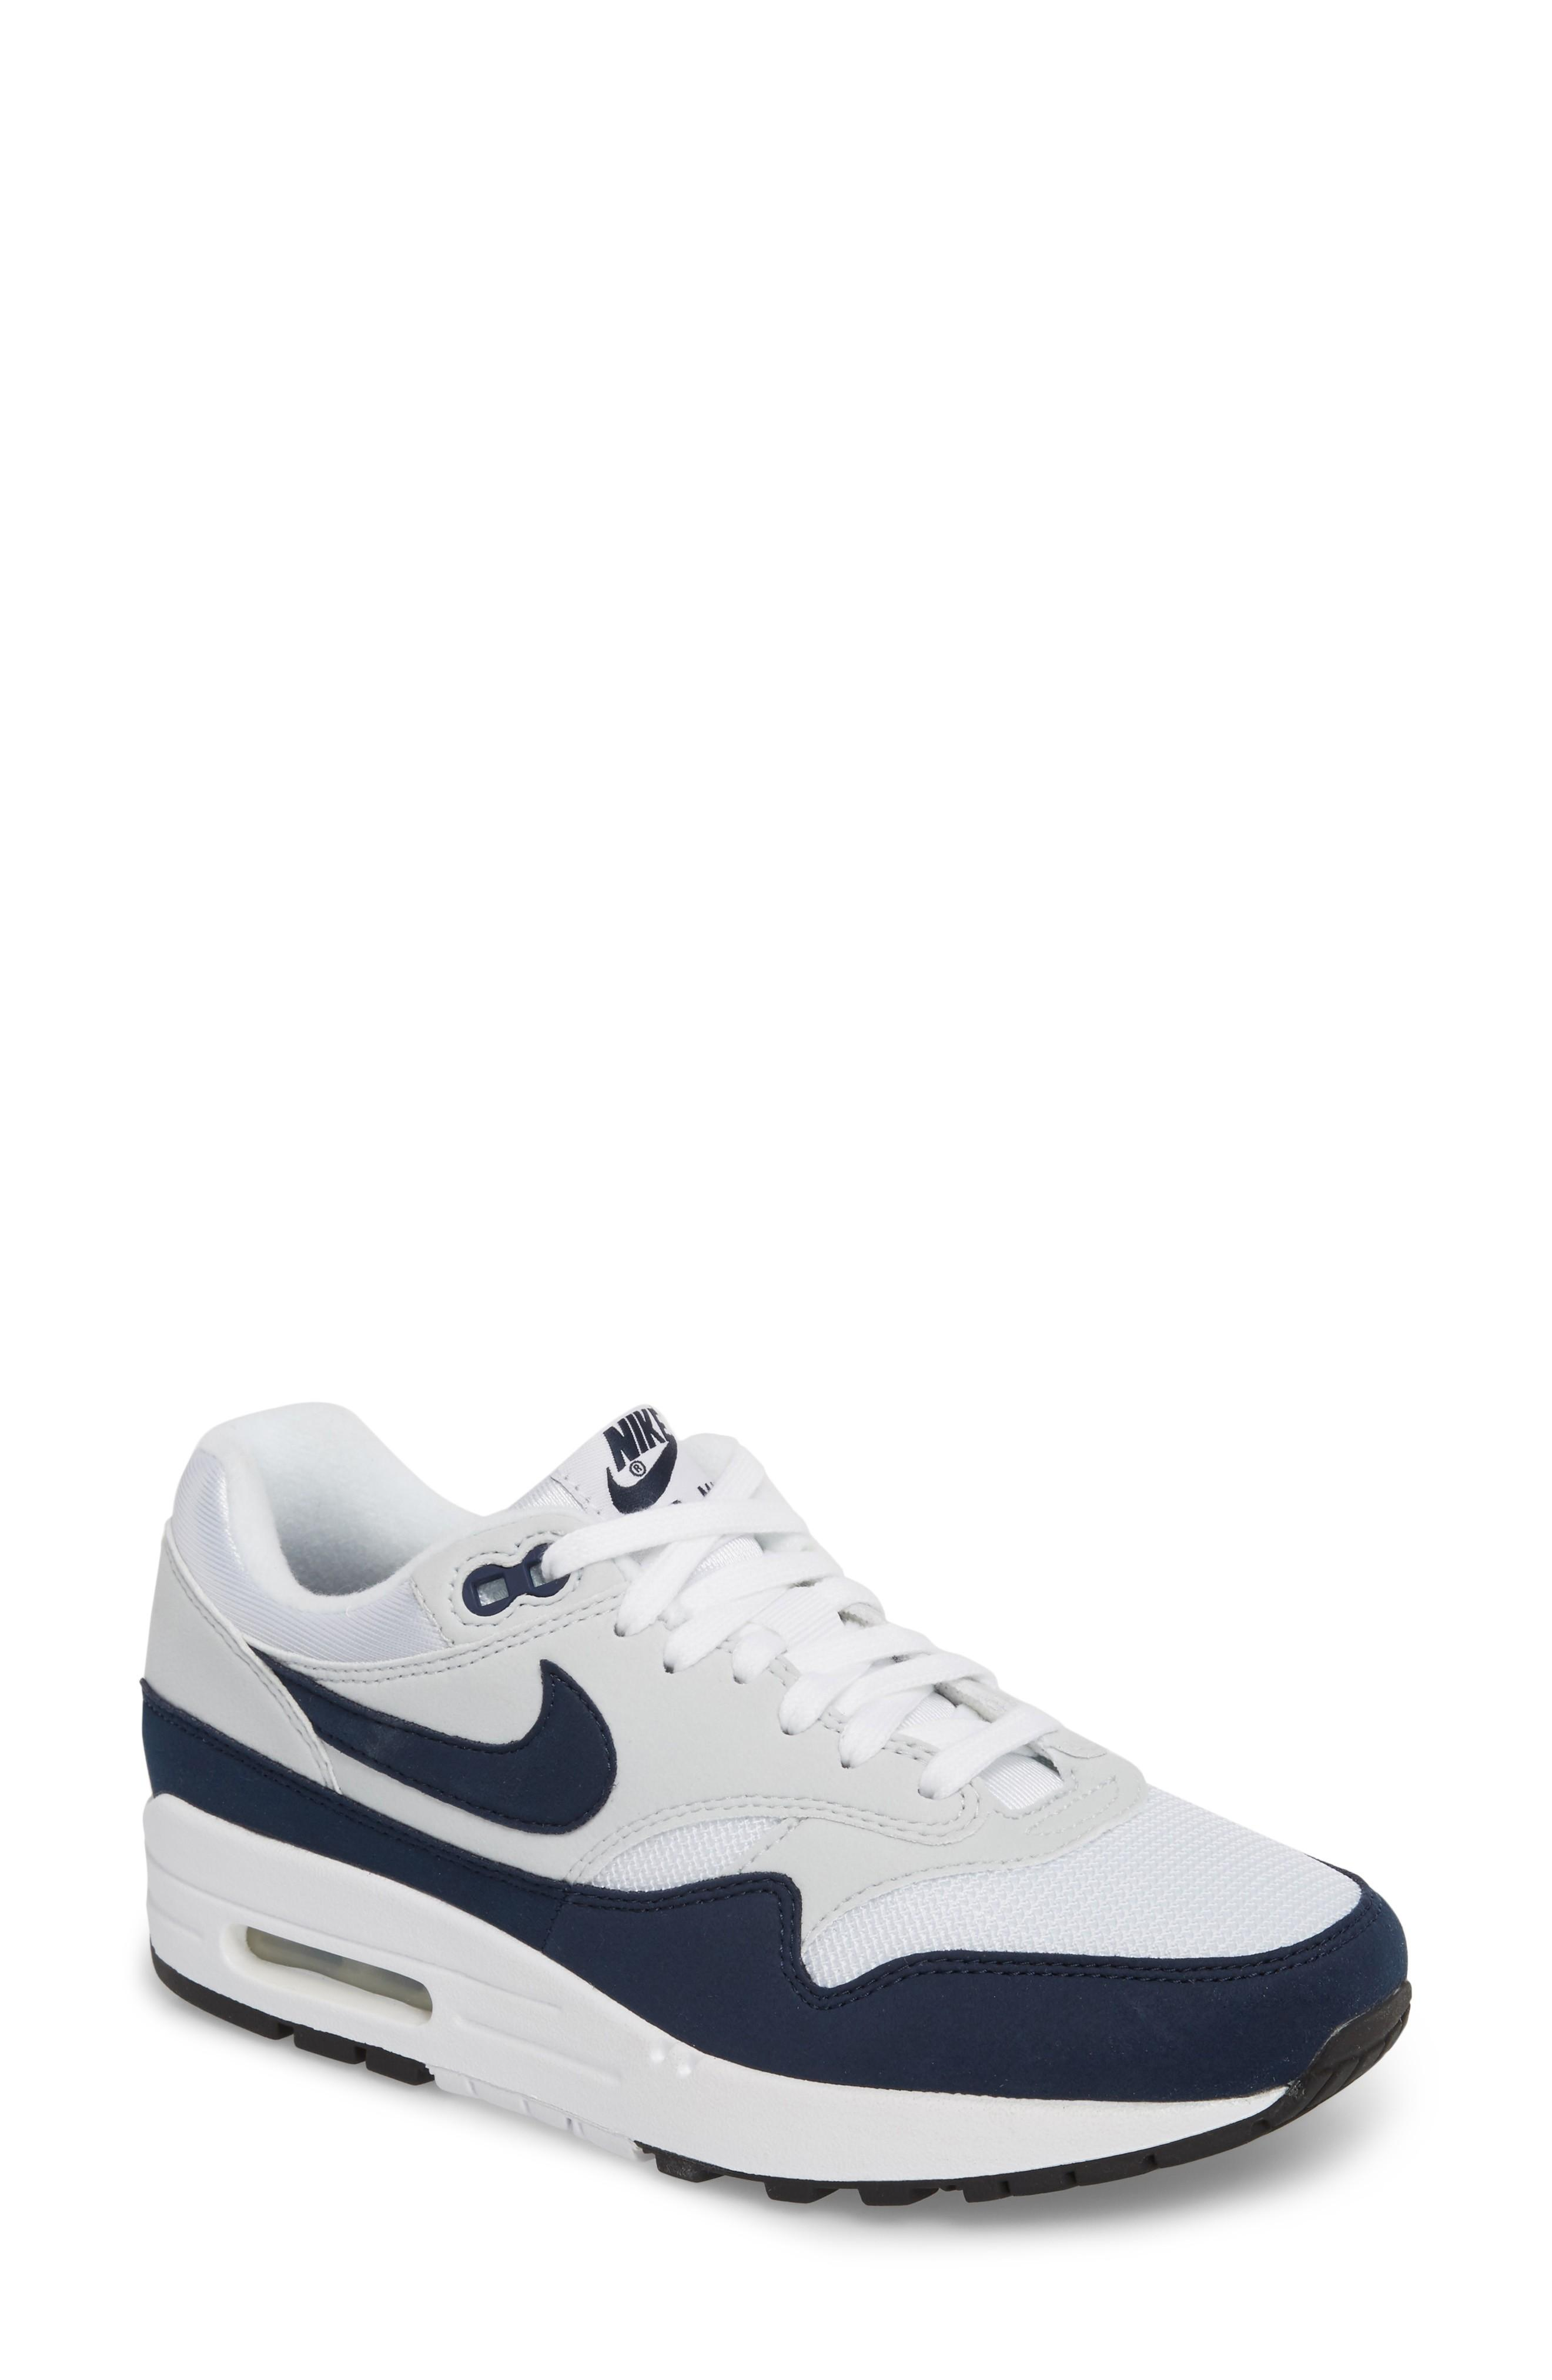 size 40 57773 fbd51 Nike  Air Max 1 Nd  Sneaker In White  Obsidian